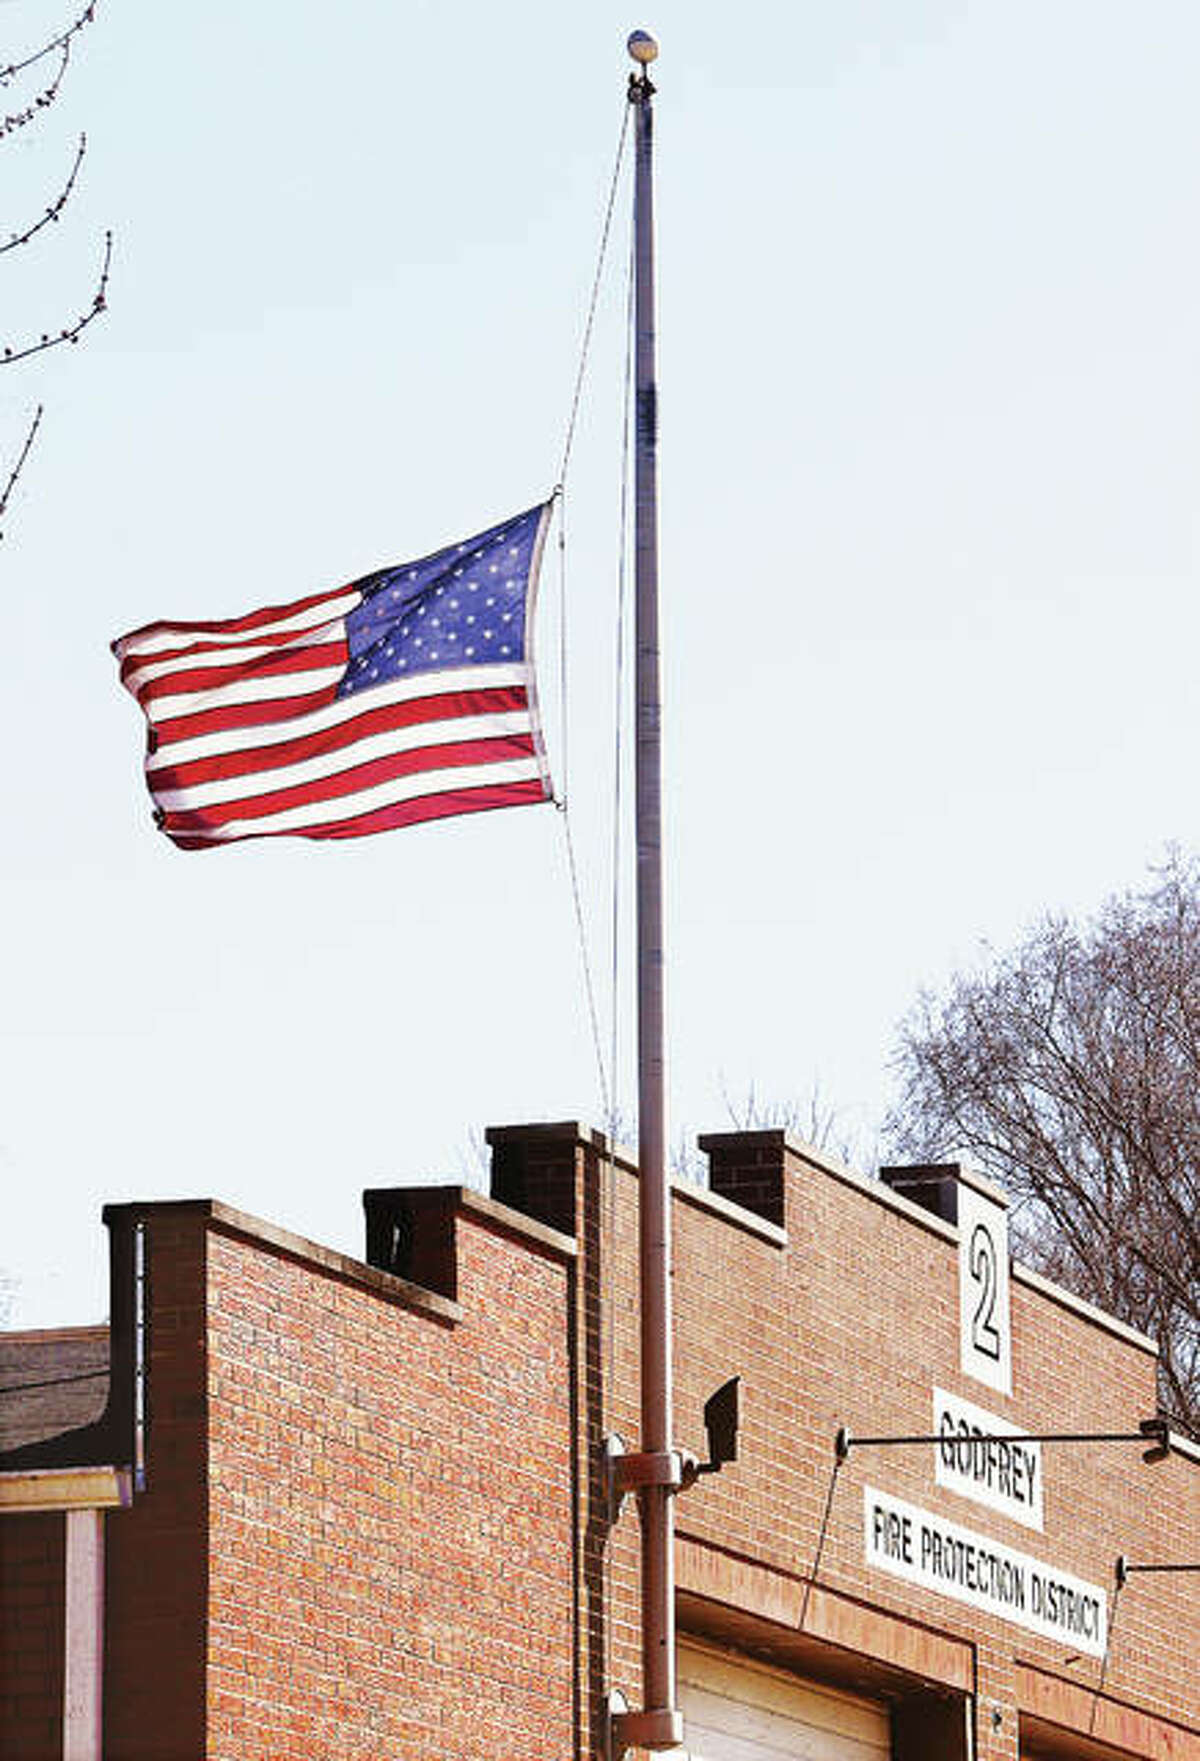 The flag at Godfrey Fire Station 2 flies at half staff Thursday in honor of Godfrey Fire Capt. Jake Ringering on the one-year anniversary of his death, March 5, 2019, while fighting a fire near Bethalto. Ringering, who was 37, died when a wall collapsed, killing him and injuring three other firefighters. His family and Godfrey firefighters on Wednesday held a private remembrance late Thursday afternoon at Station 2 where Ringering worked.